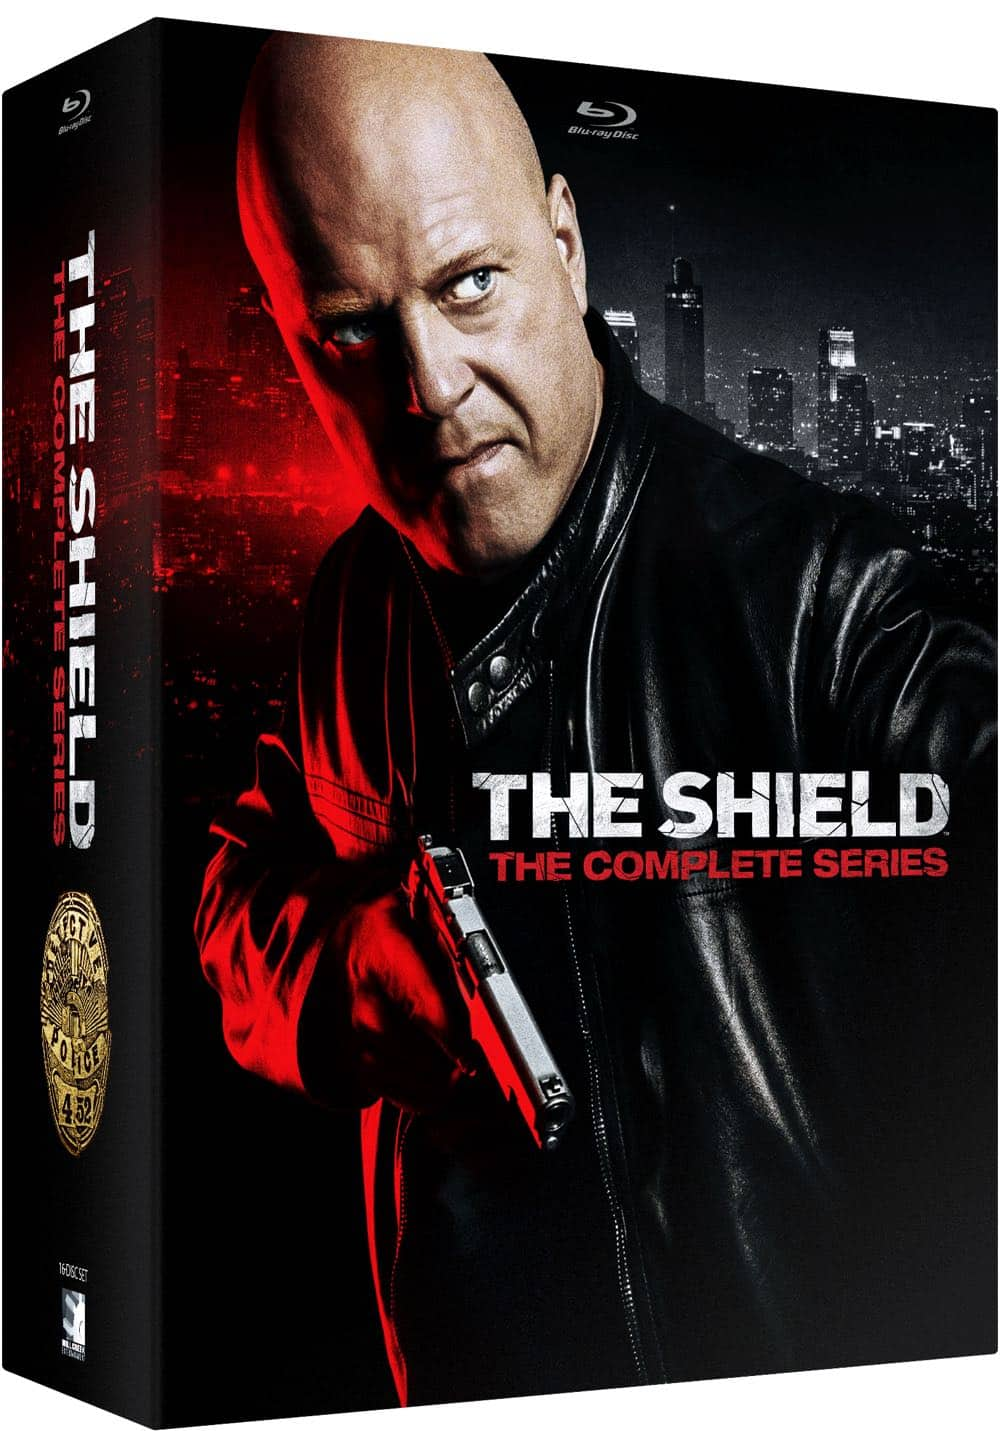 THE SHIELD The Complete Series Blu ray Collectors Edition 3D